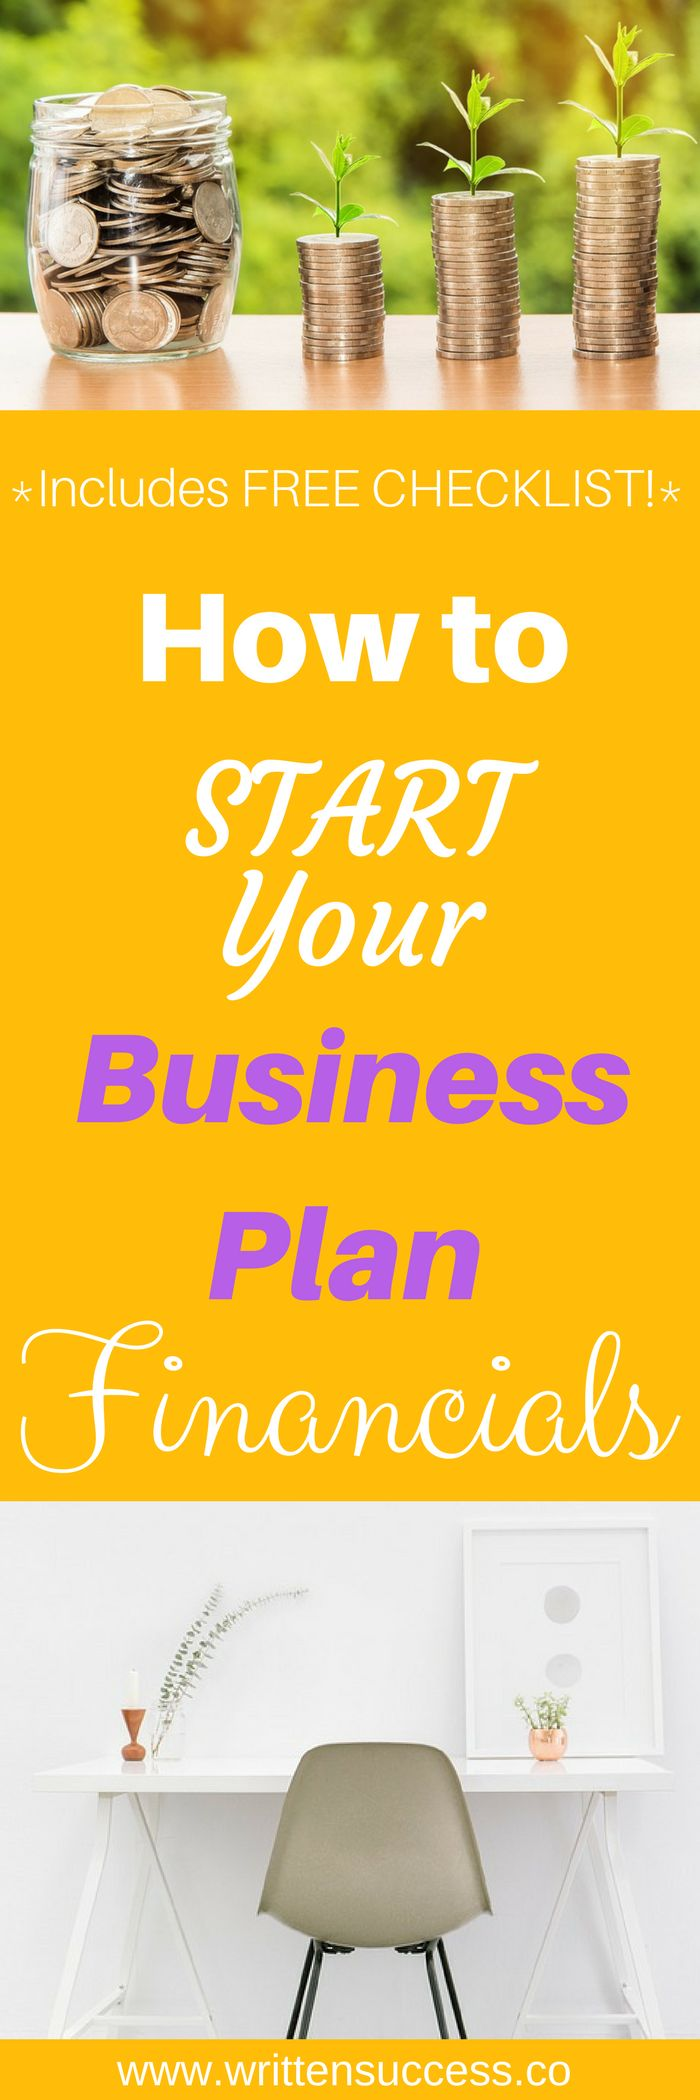 Are your business plan financials stressing you out? There's an easier way to get started! Download the free checklist to get going in the right direction!